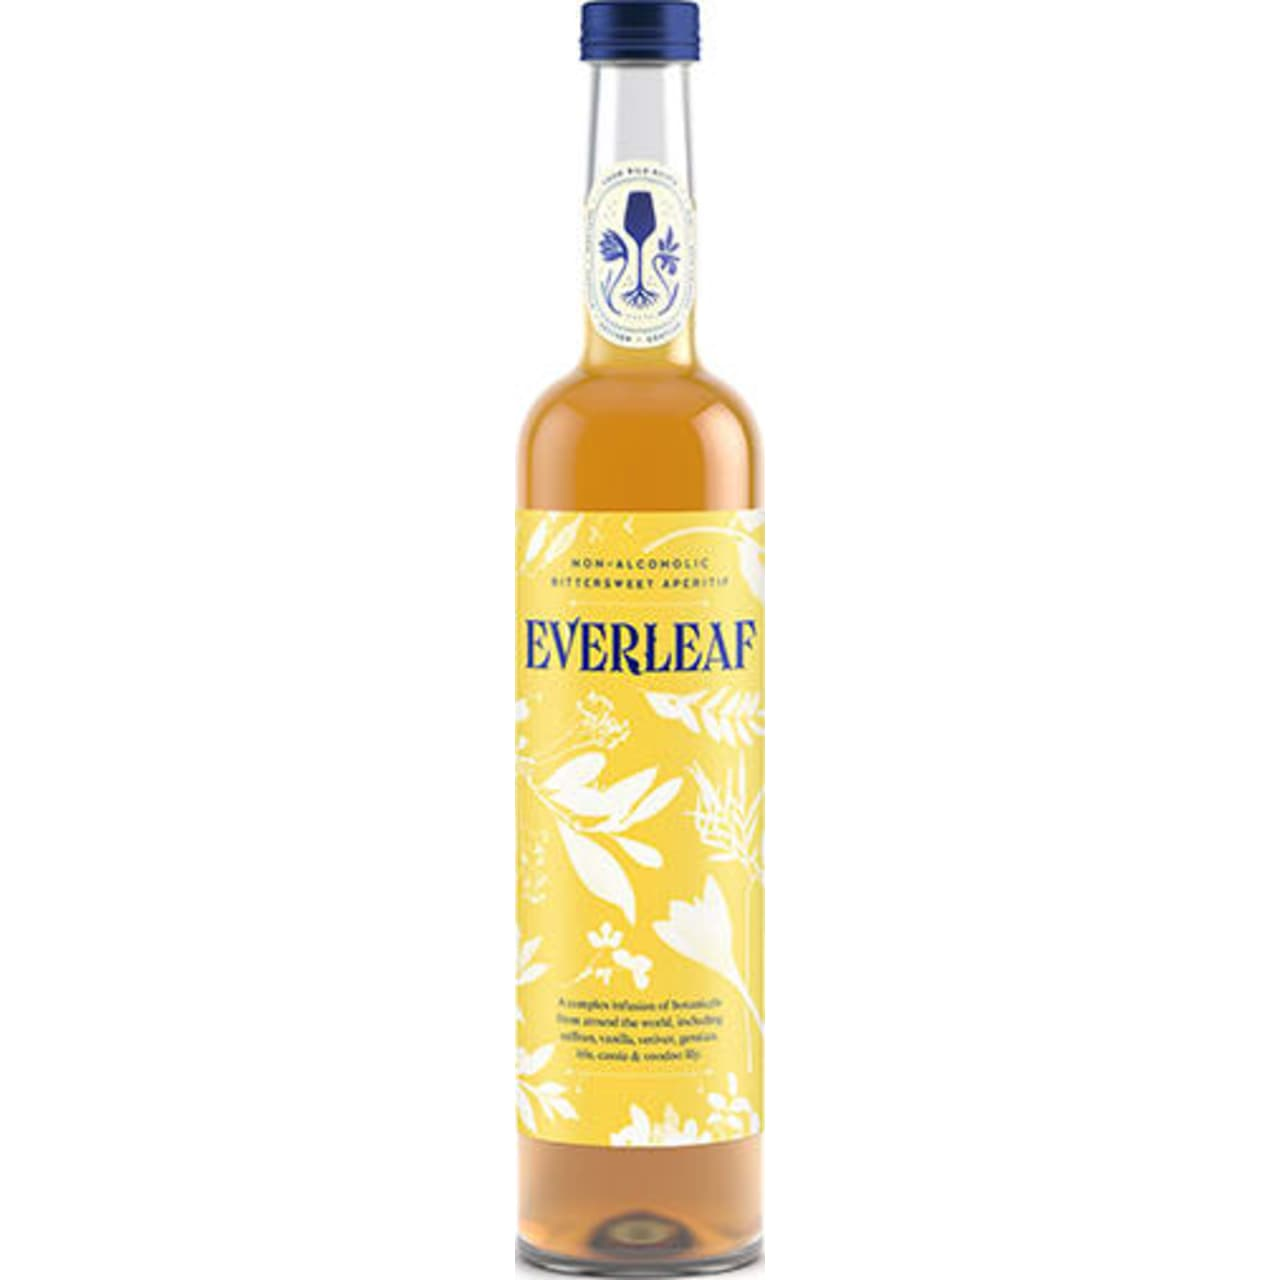 Product Image - Everleaf drinks Everleaf Non-Alcoholic Bittersweet Aperitif